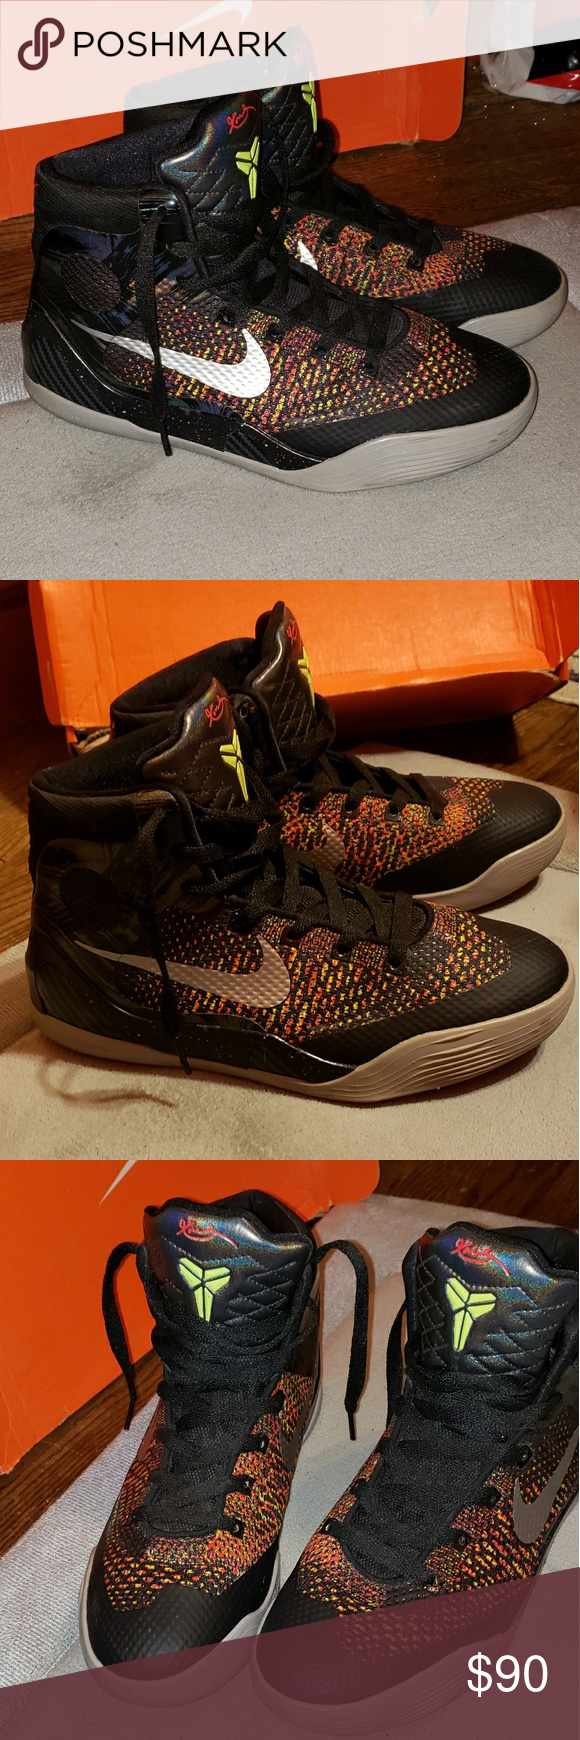 new product cff01 21bf5 Nike Kobe IX 9 Elite Masterpiece (GS) WORN BOYS SIZE 5.5 metallic silver,  black, bright crimson and volt colorway kobe bryant Shoes Sneakers